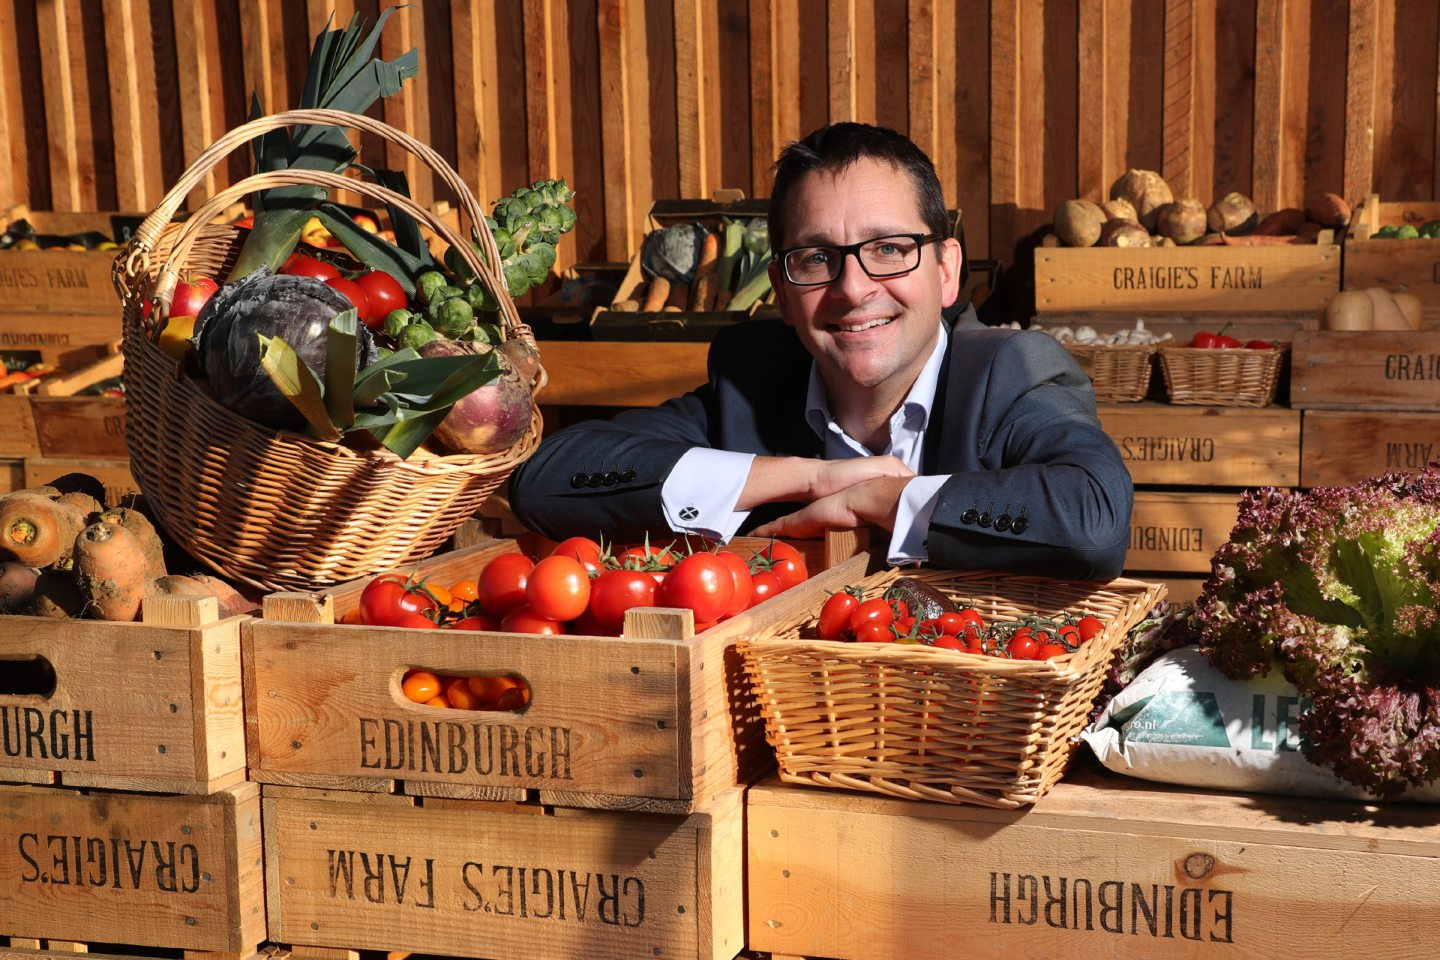 James Withers, Chief Executive of Scotland Food & Drink